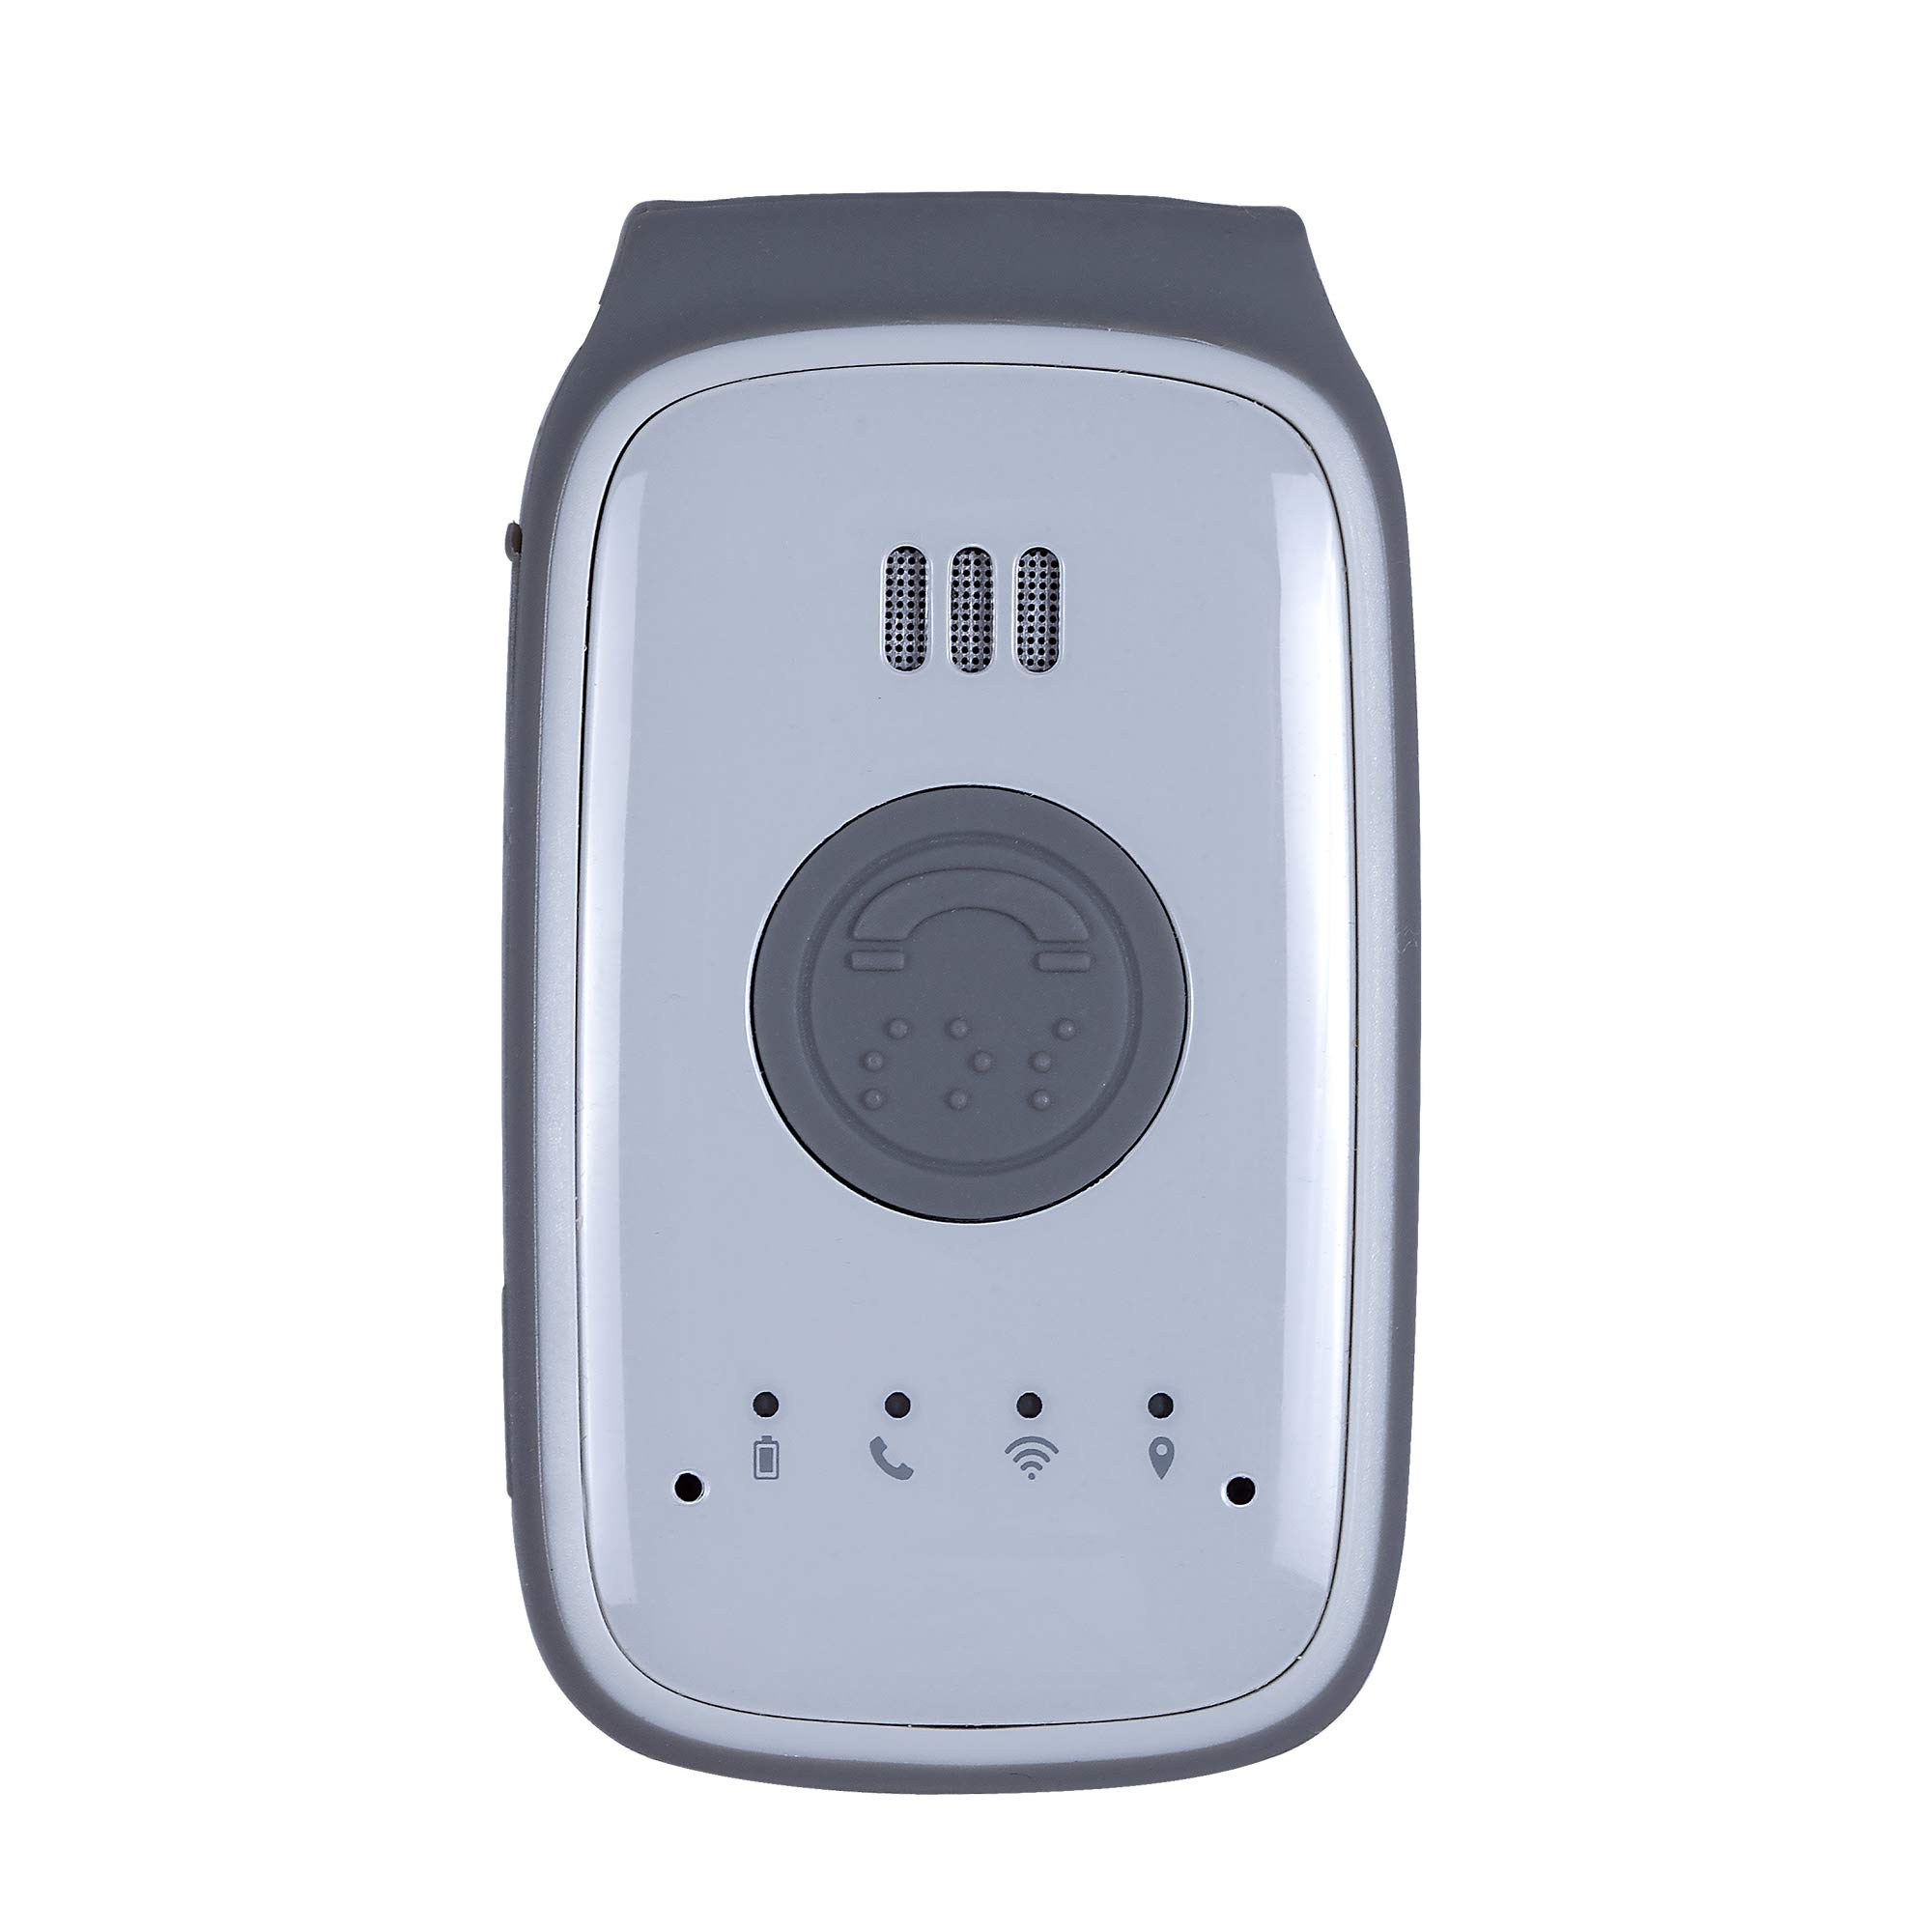 LifeStation Mobile GPS Medical Alert - All-in-one-System for Seniors On-The-Go. Nationwide GPS and WiFi Coverage. Includes 6 Free Months of 24/7 Emergency Monitoring.